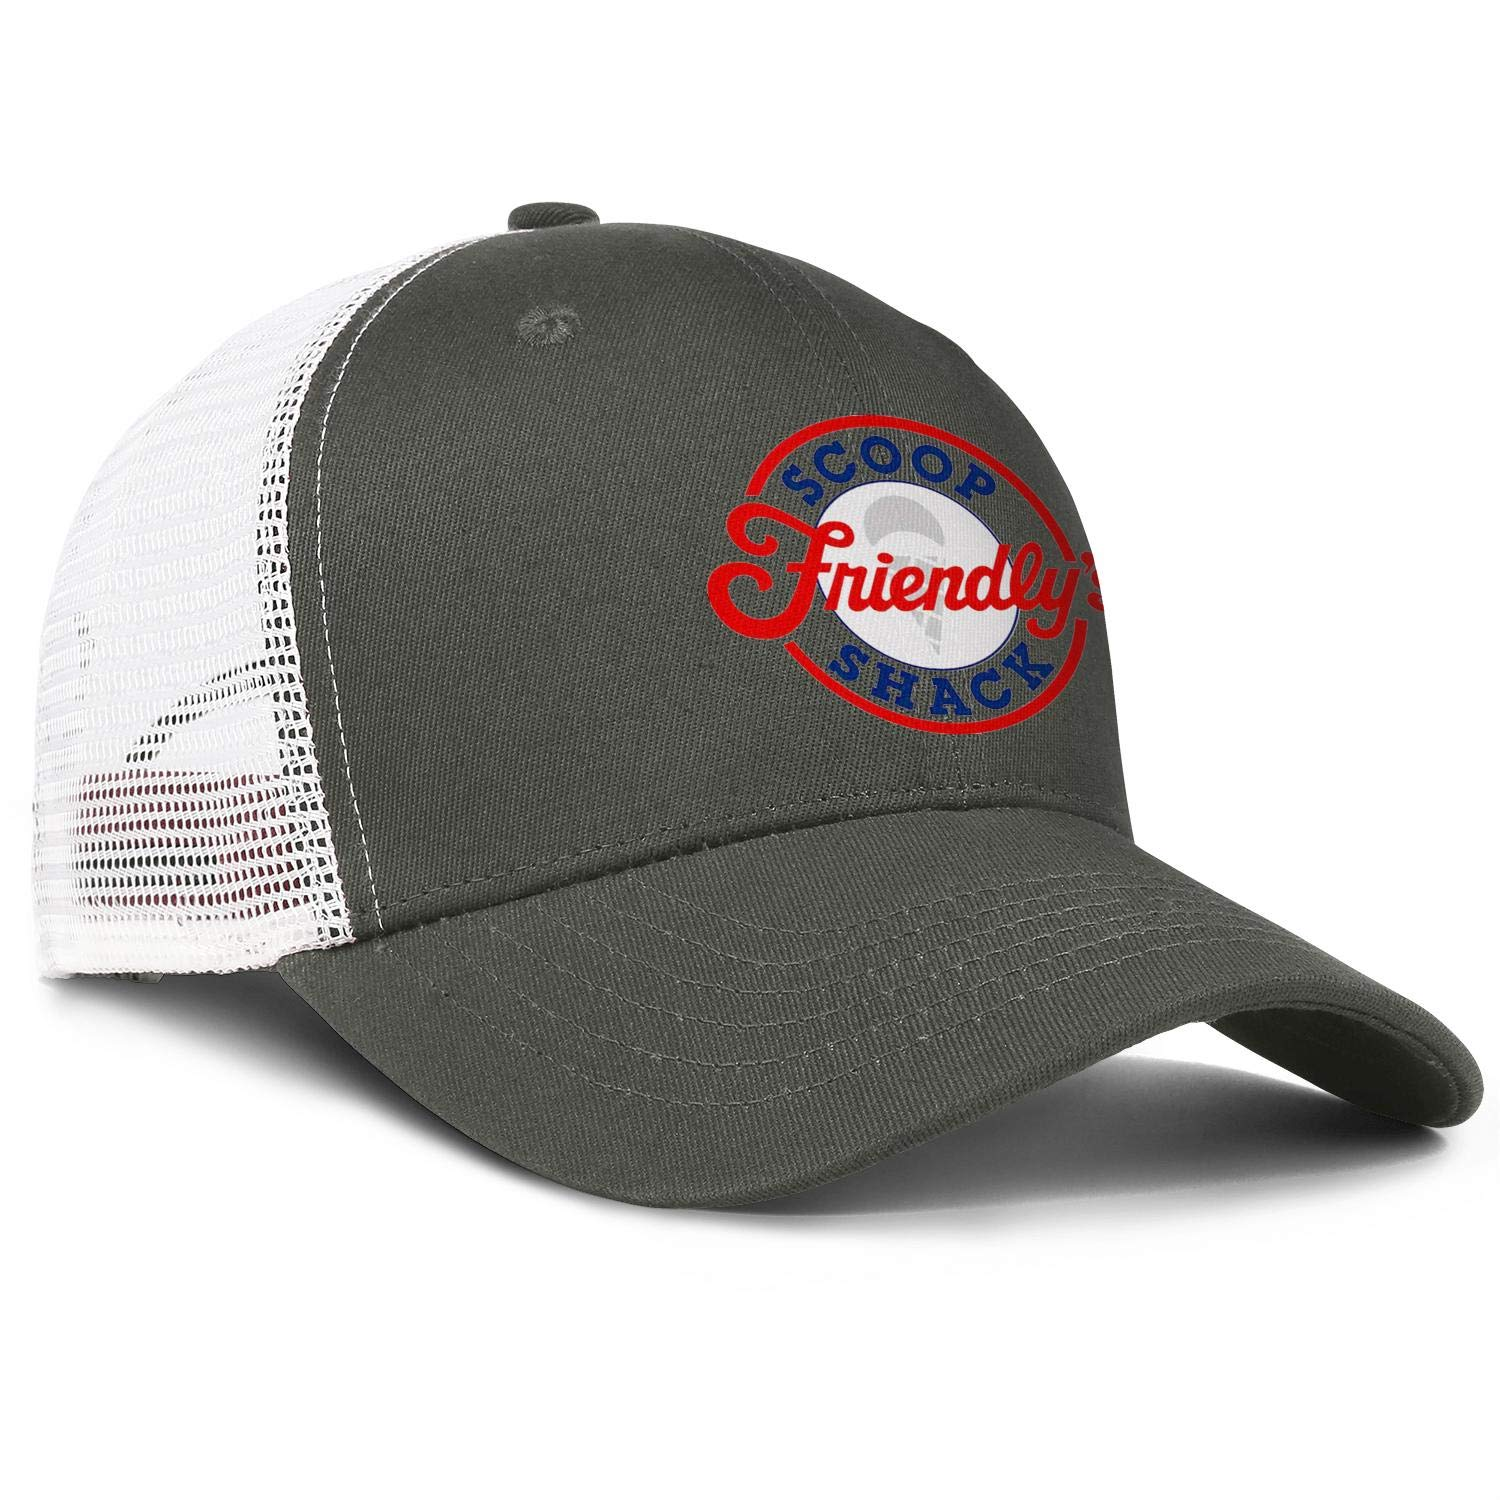 WintyHC Friendlys Logo Cowboy Hat Trucker Hat Adjustable Fits Skull Cap